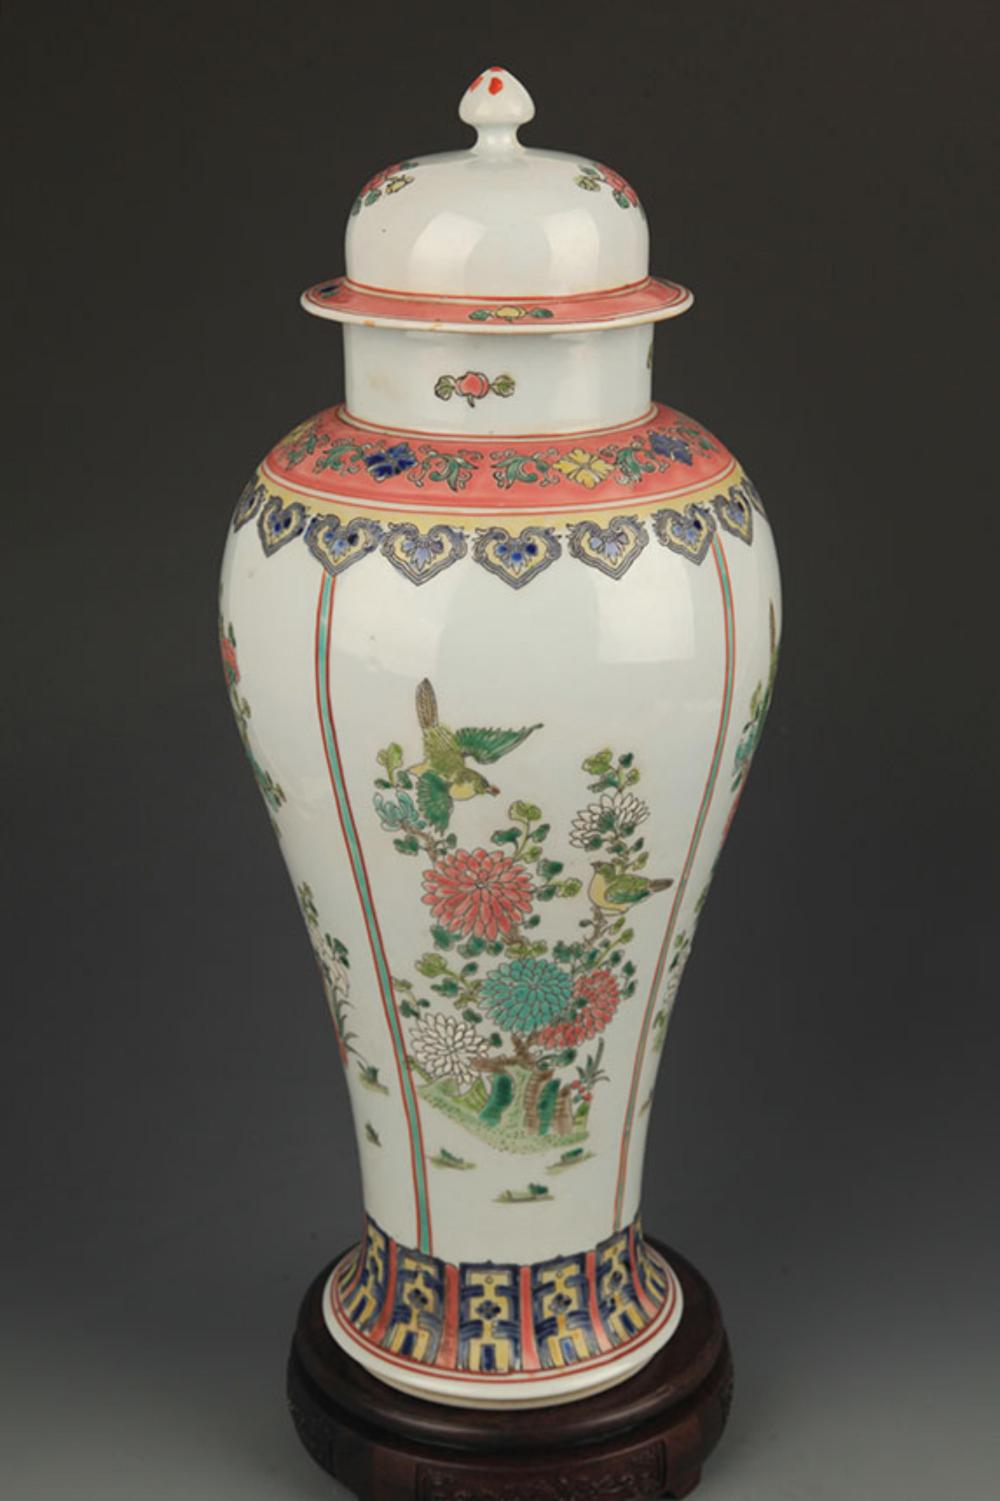 A FAMILLE ROSE FLOWER AND BIRD GENERAL JAR